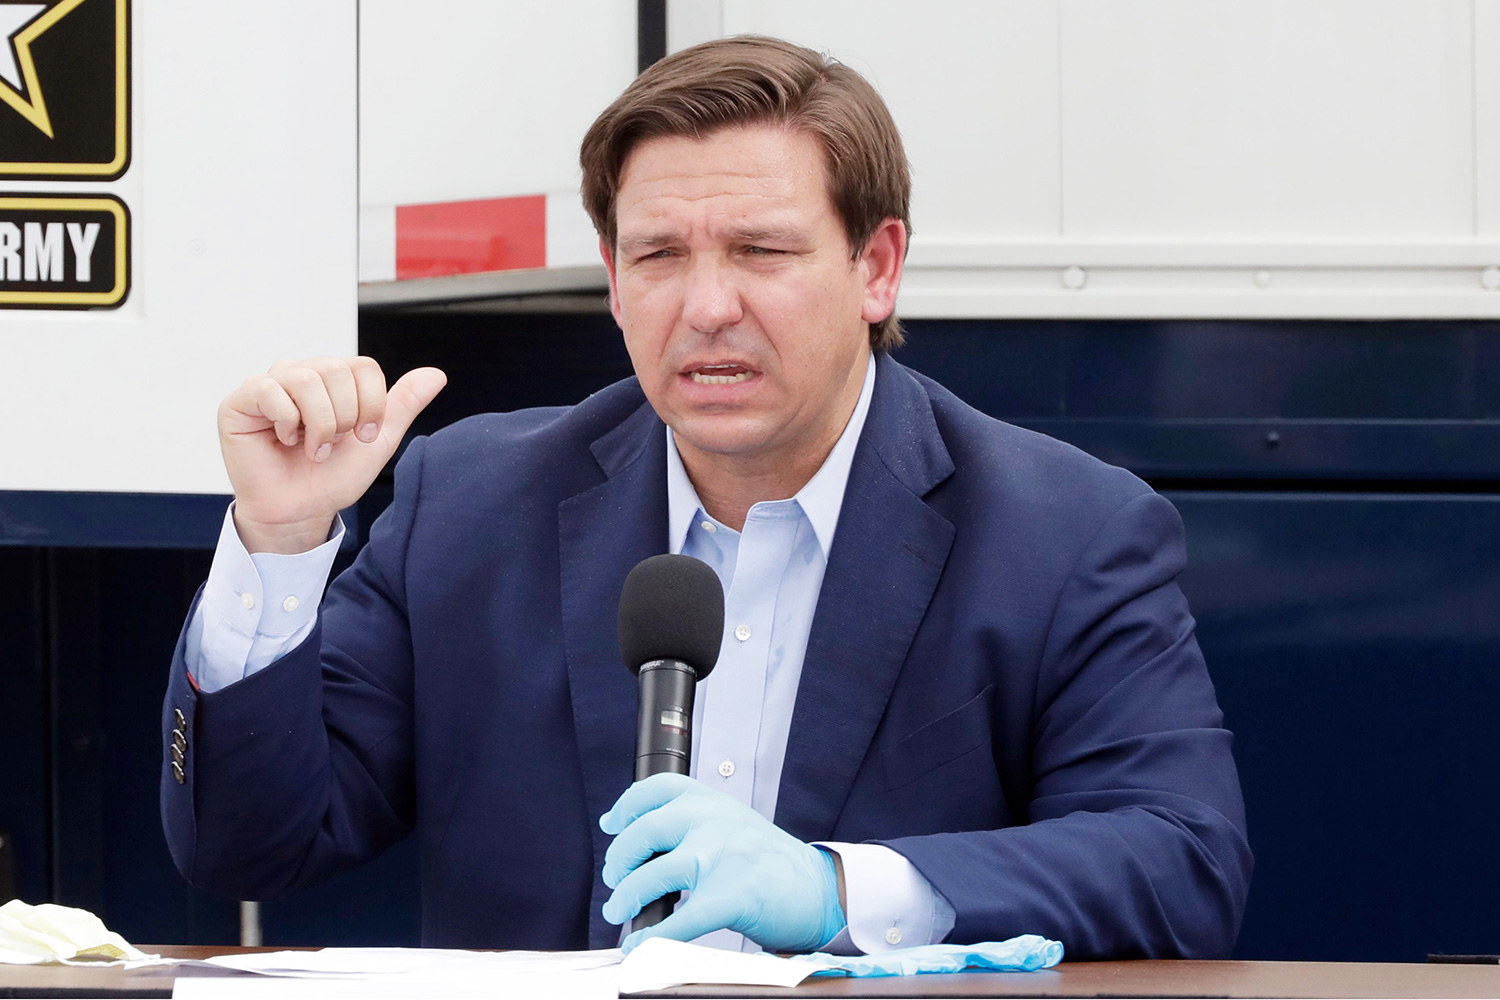 Florida Gov. Ron DeSantis, gestures as he speaks during a news conference in front of a U.S. Army Corps of Engineers mobile command center at the Miami Beach Convention Center, in Miami Beach, Fla. The Corps of Engineers will transform the newly renovated facility into a hospital by April 27, news outlets reported Tuesday Virus Outbreak Field Hospital, Miami Beach, United States - 08 Apr 2020